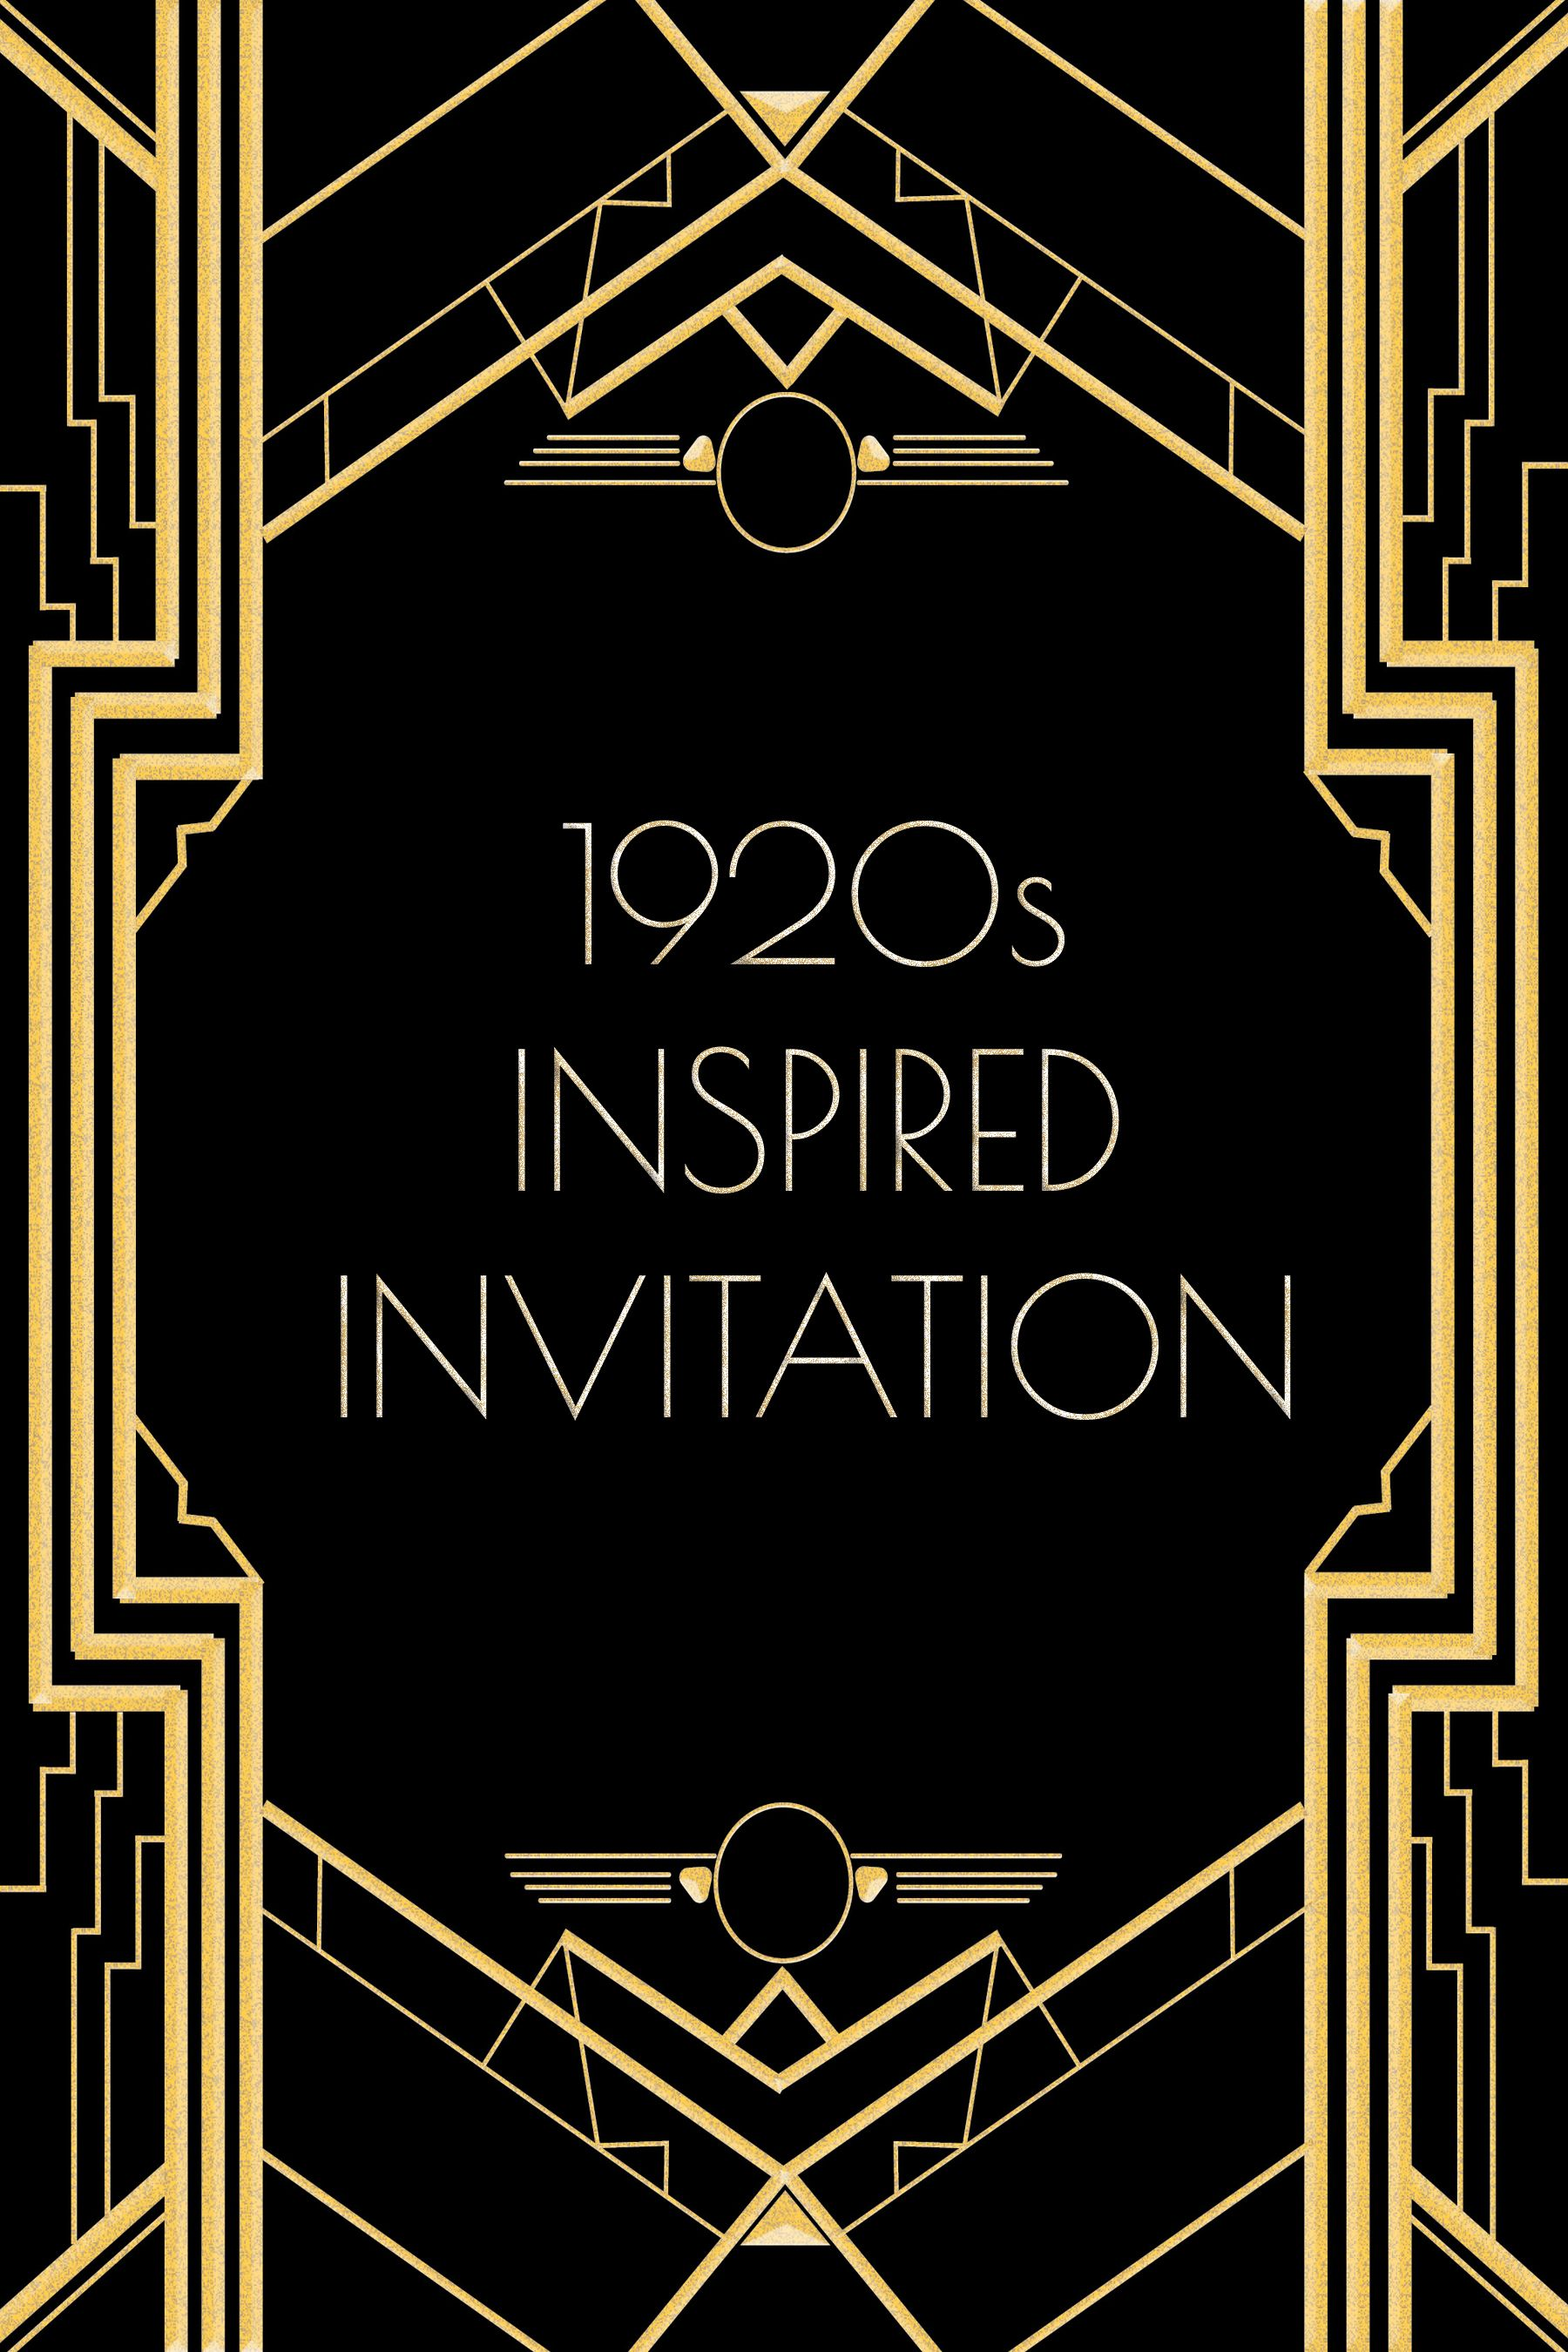 20 s years cabaret photos use this 1920s inspired invitation